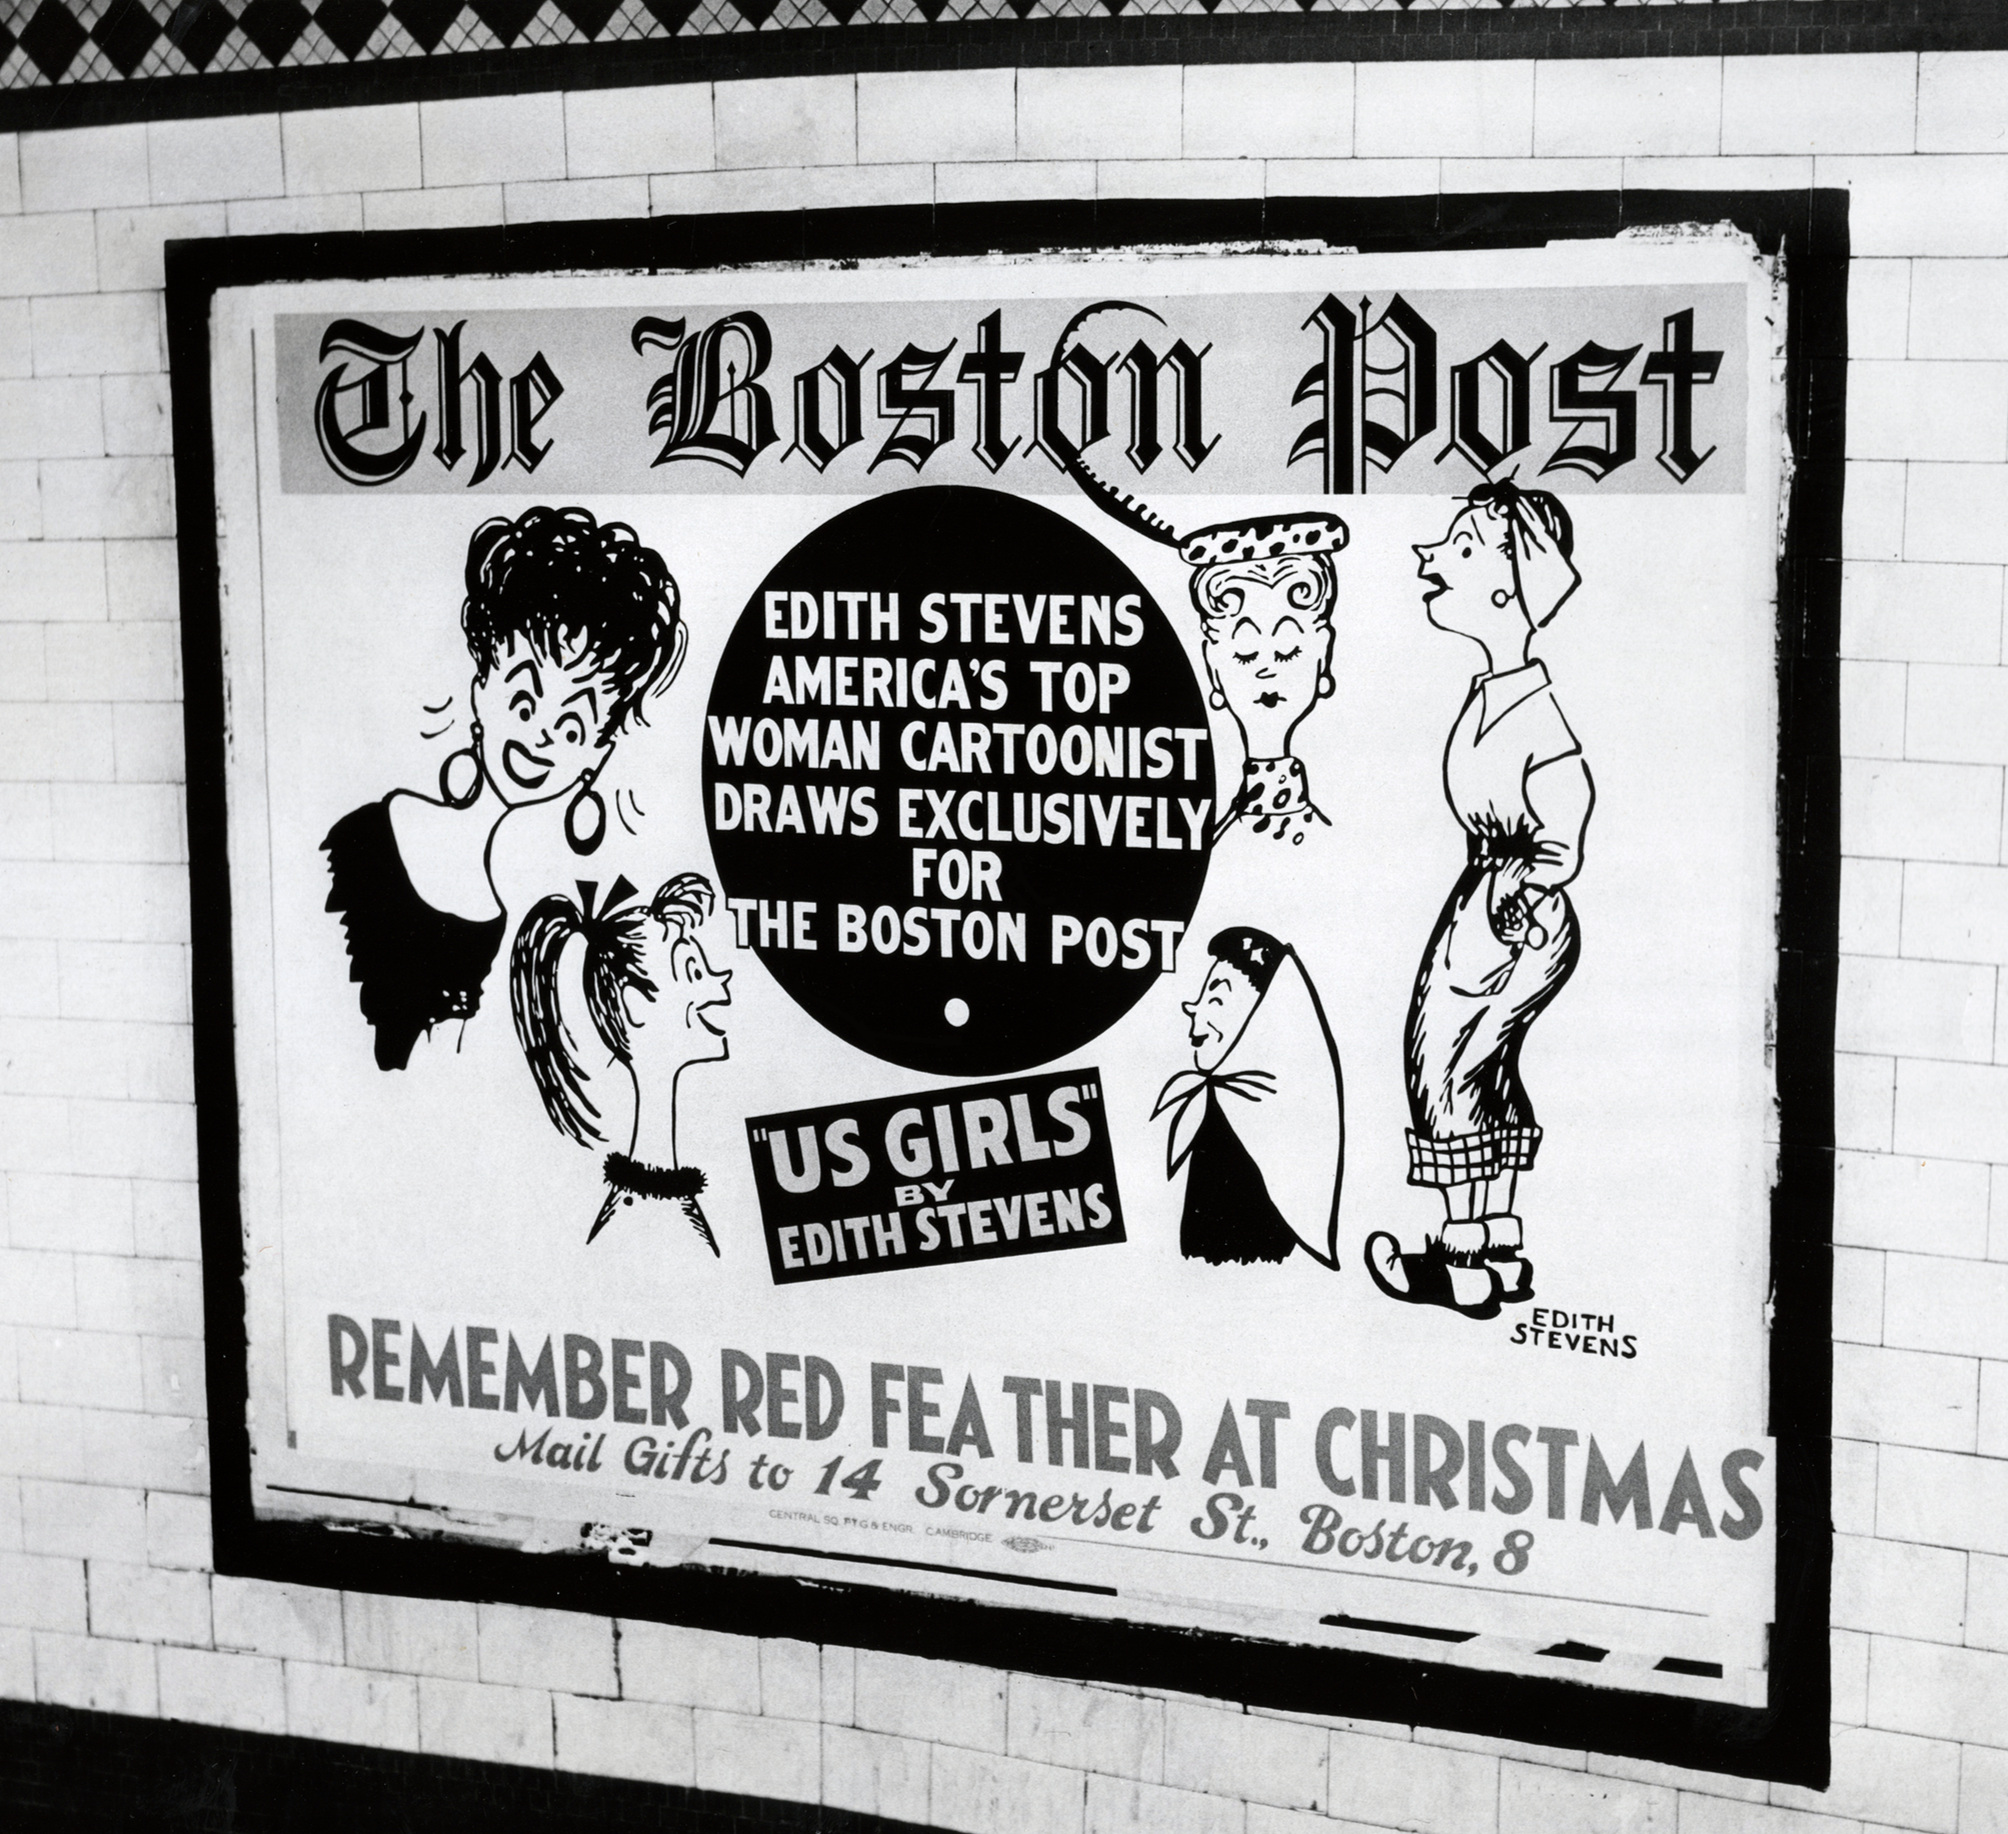 Us Girls by Edith Stevens billboard at Park Street Station in Boston, MA. 1953